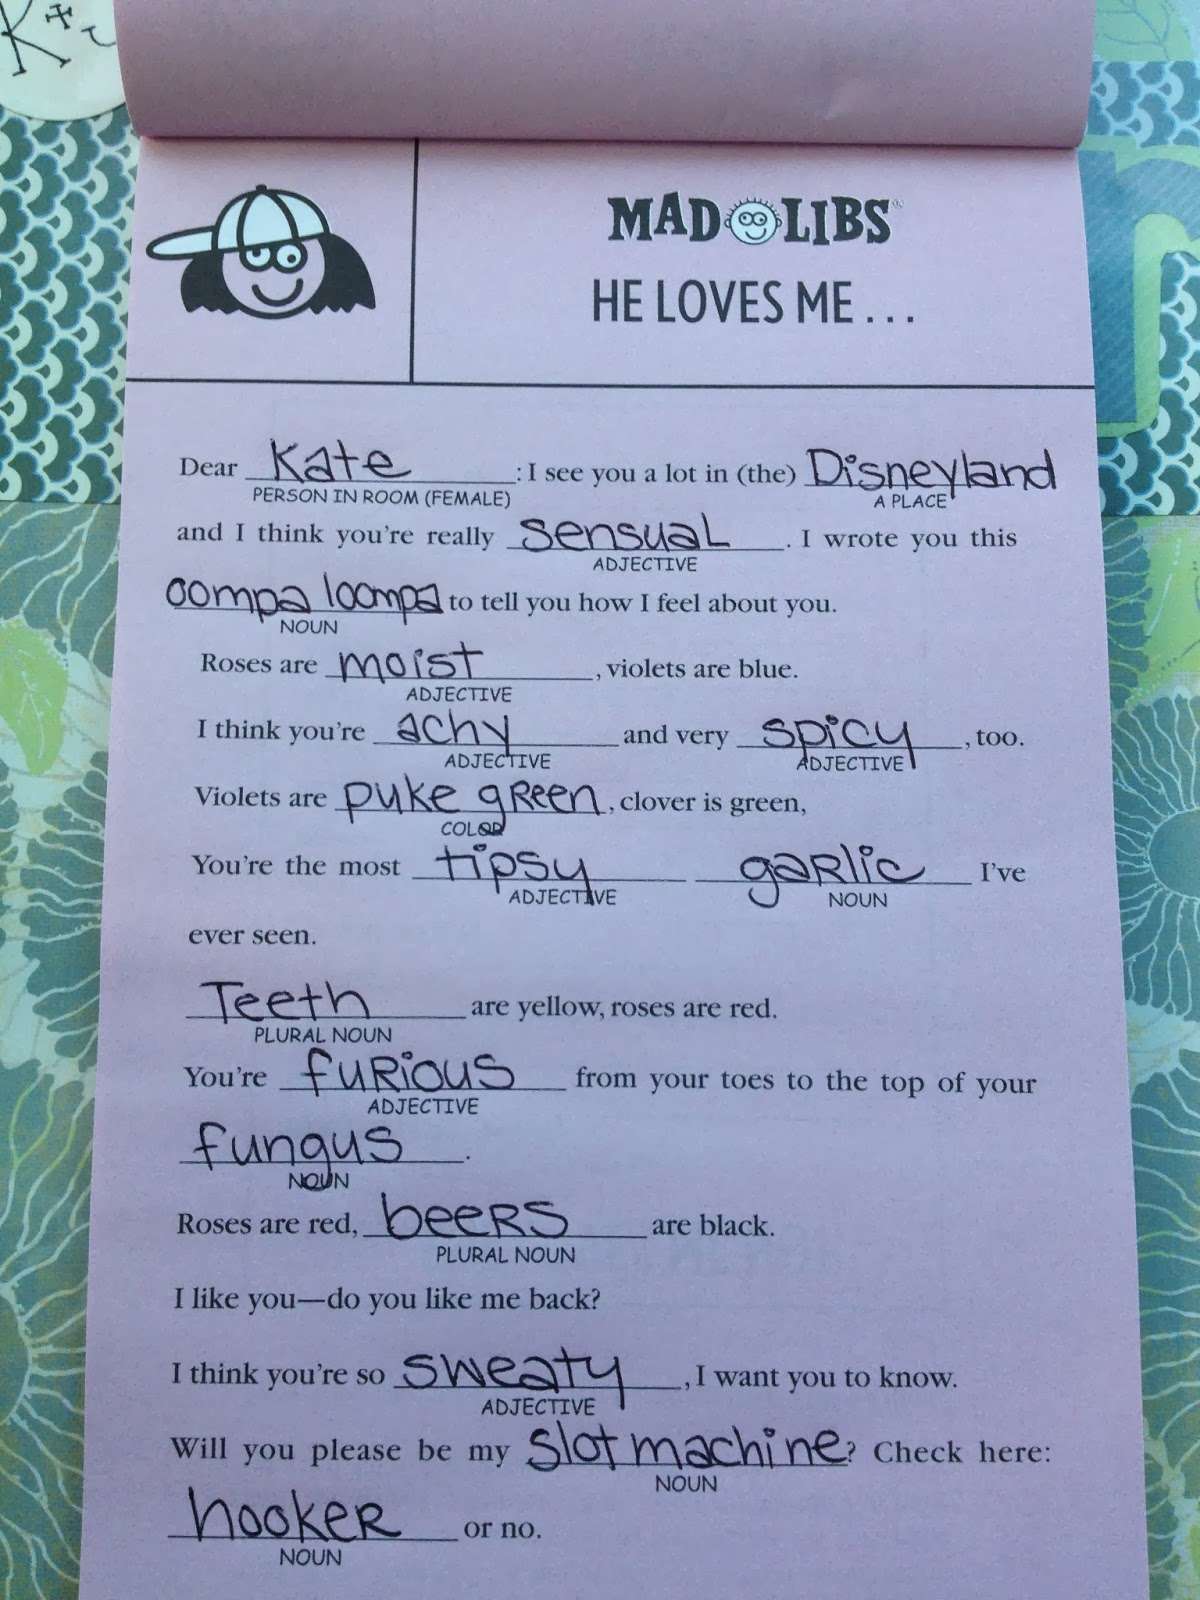 Diary Of A Dental School Wife Mad Libs Date